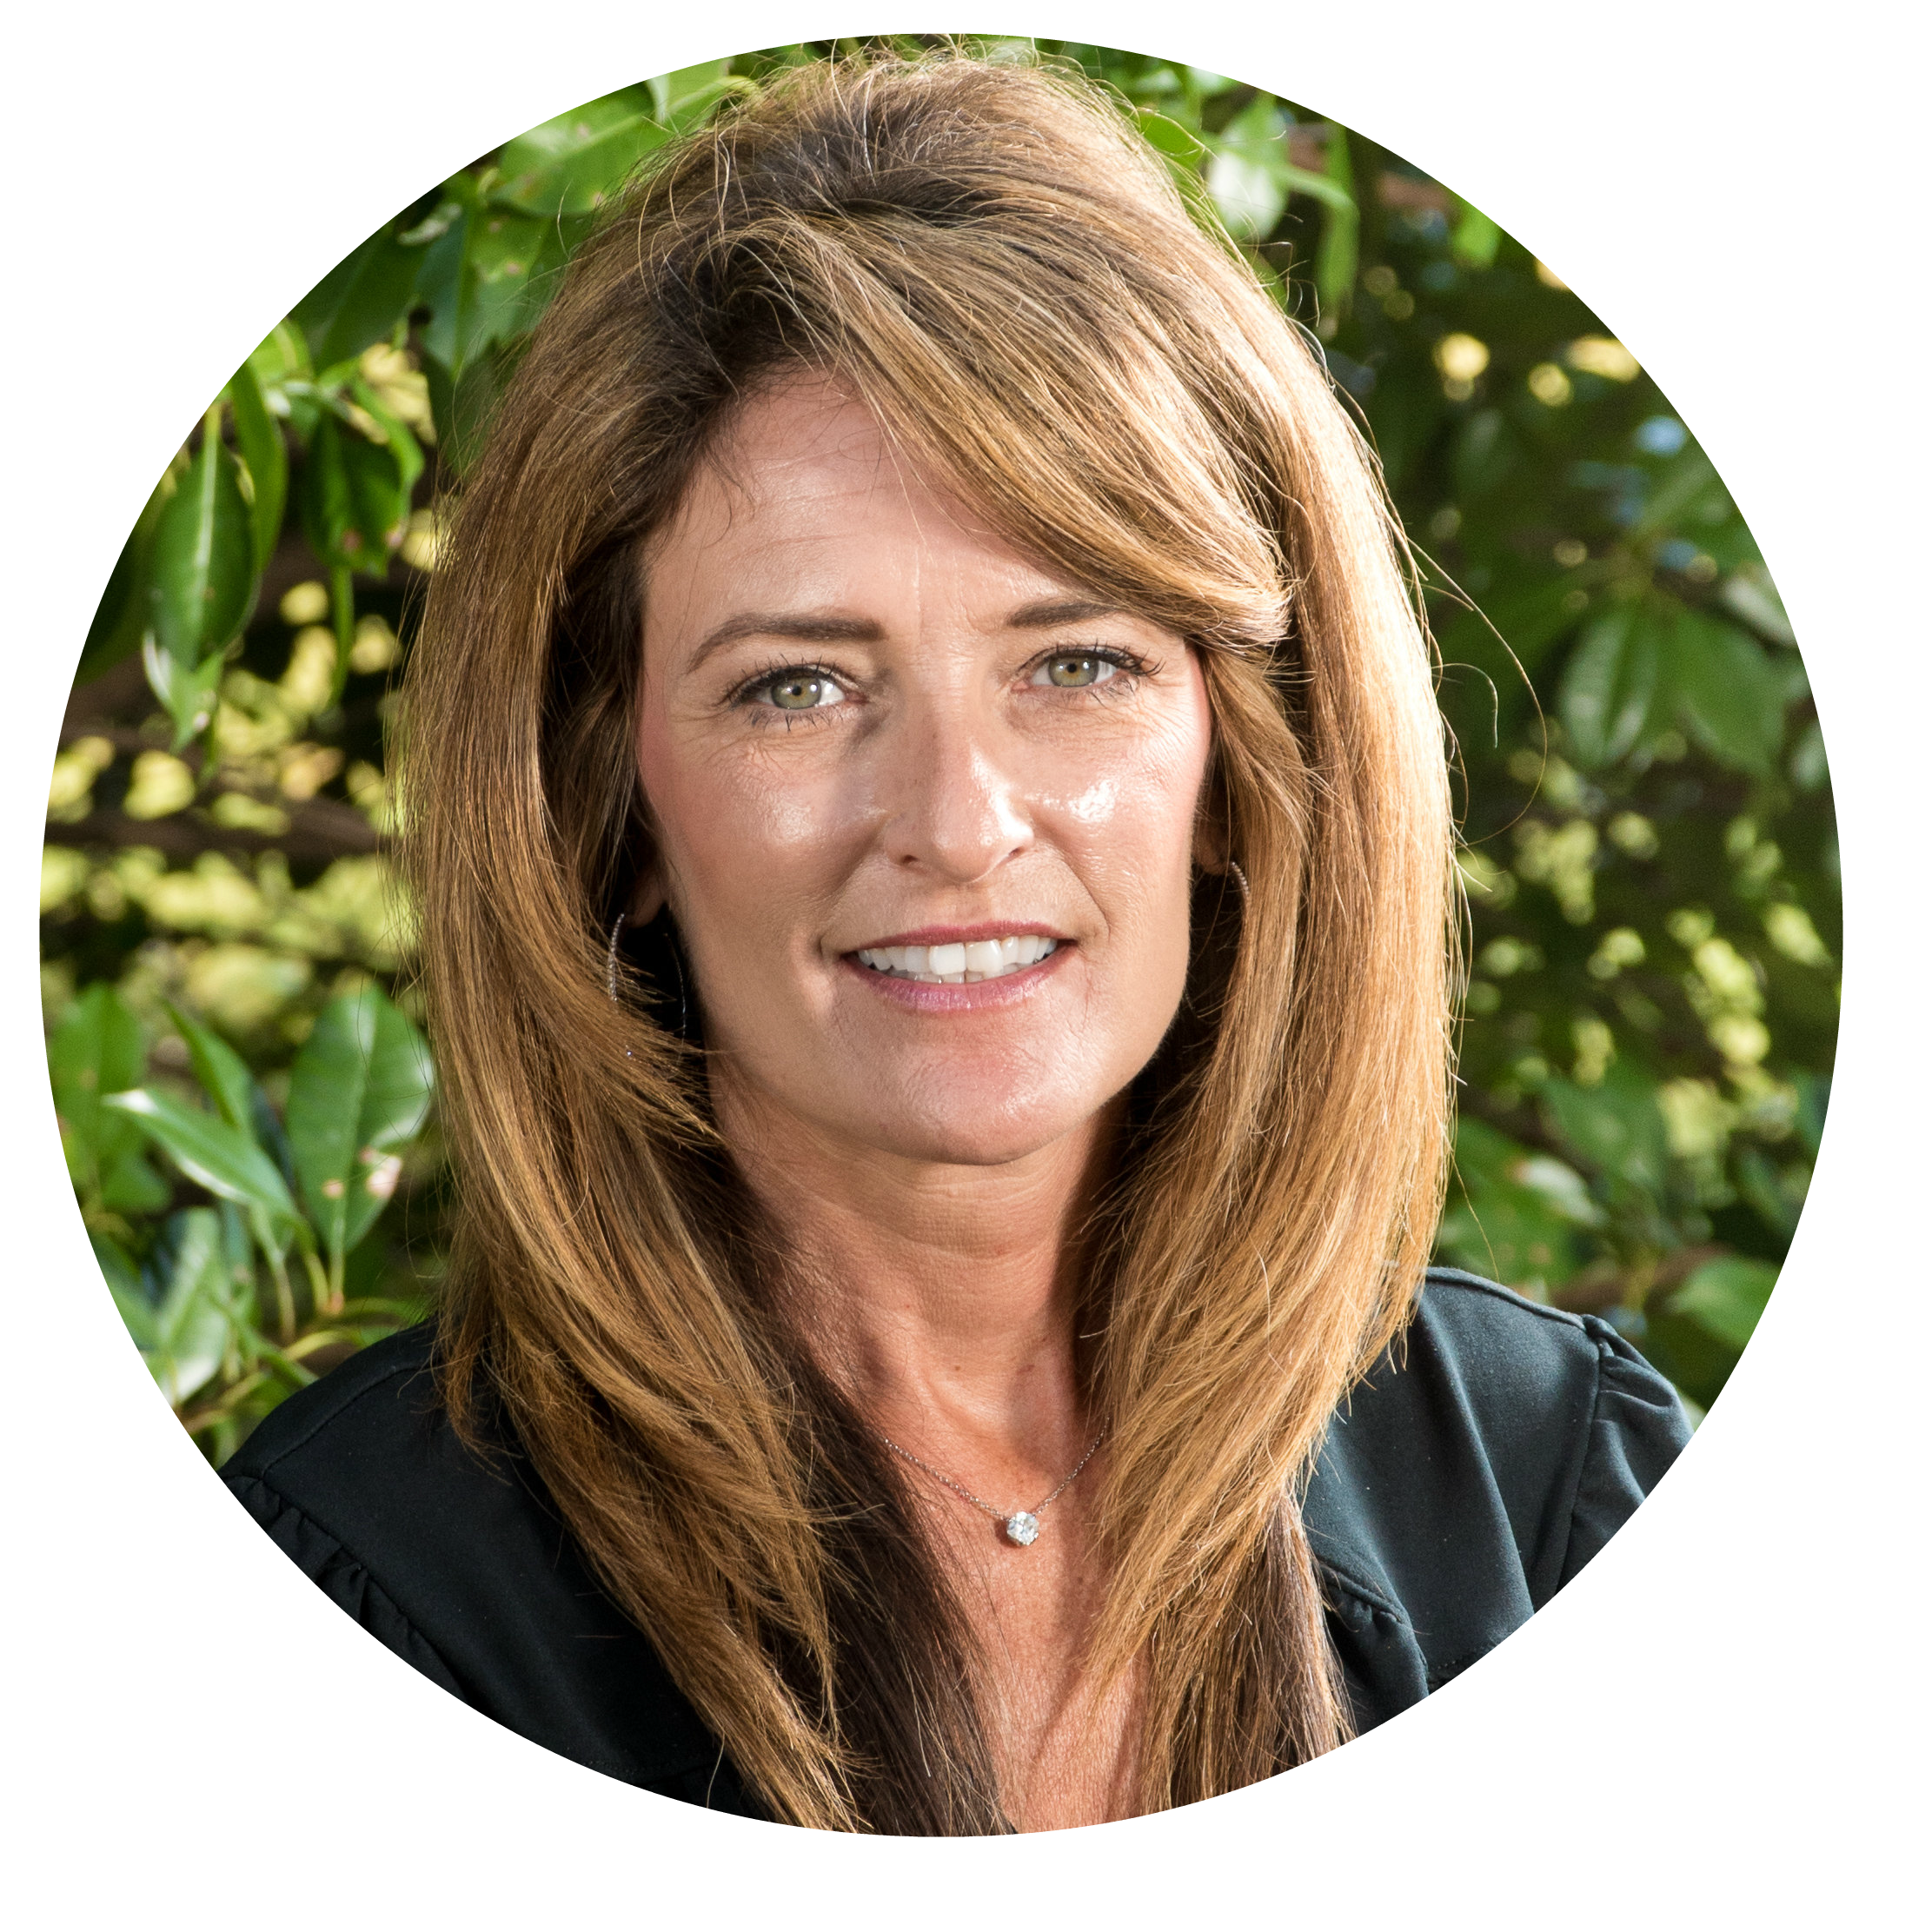 Kelly Cox, Regional Property Manager